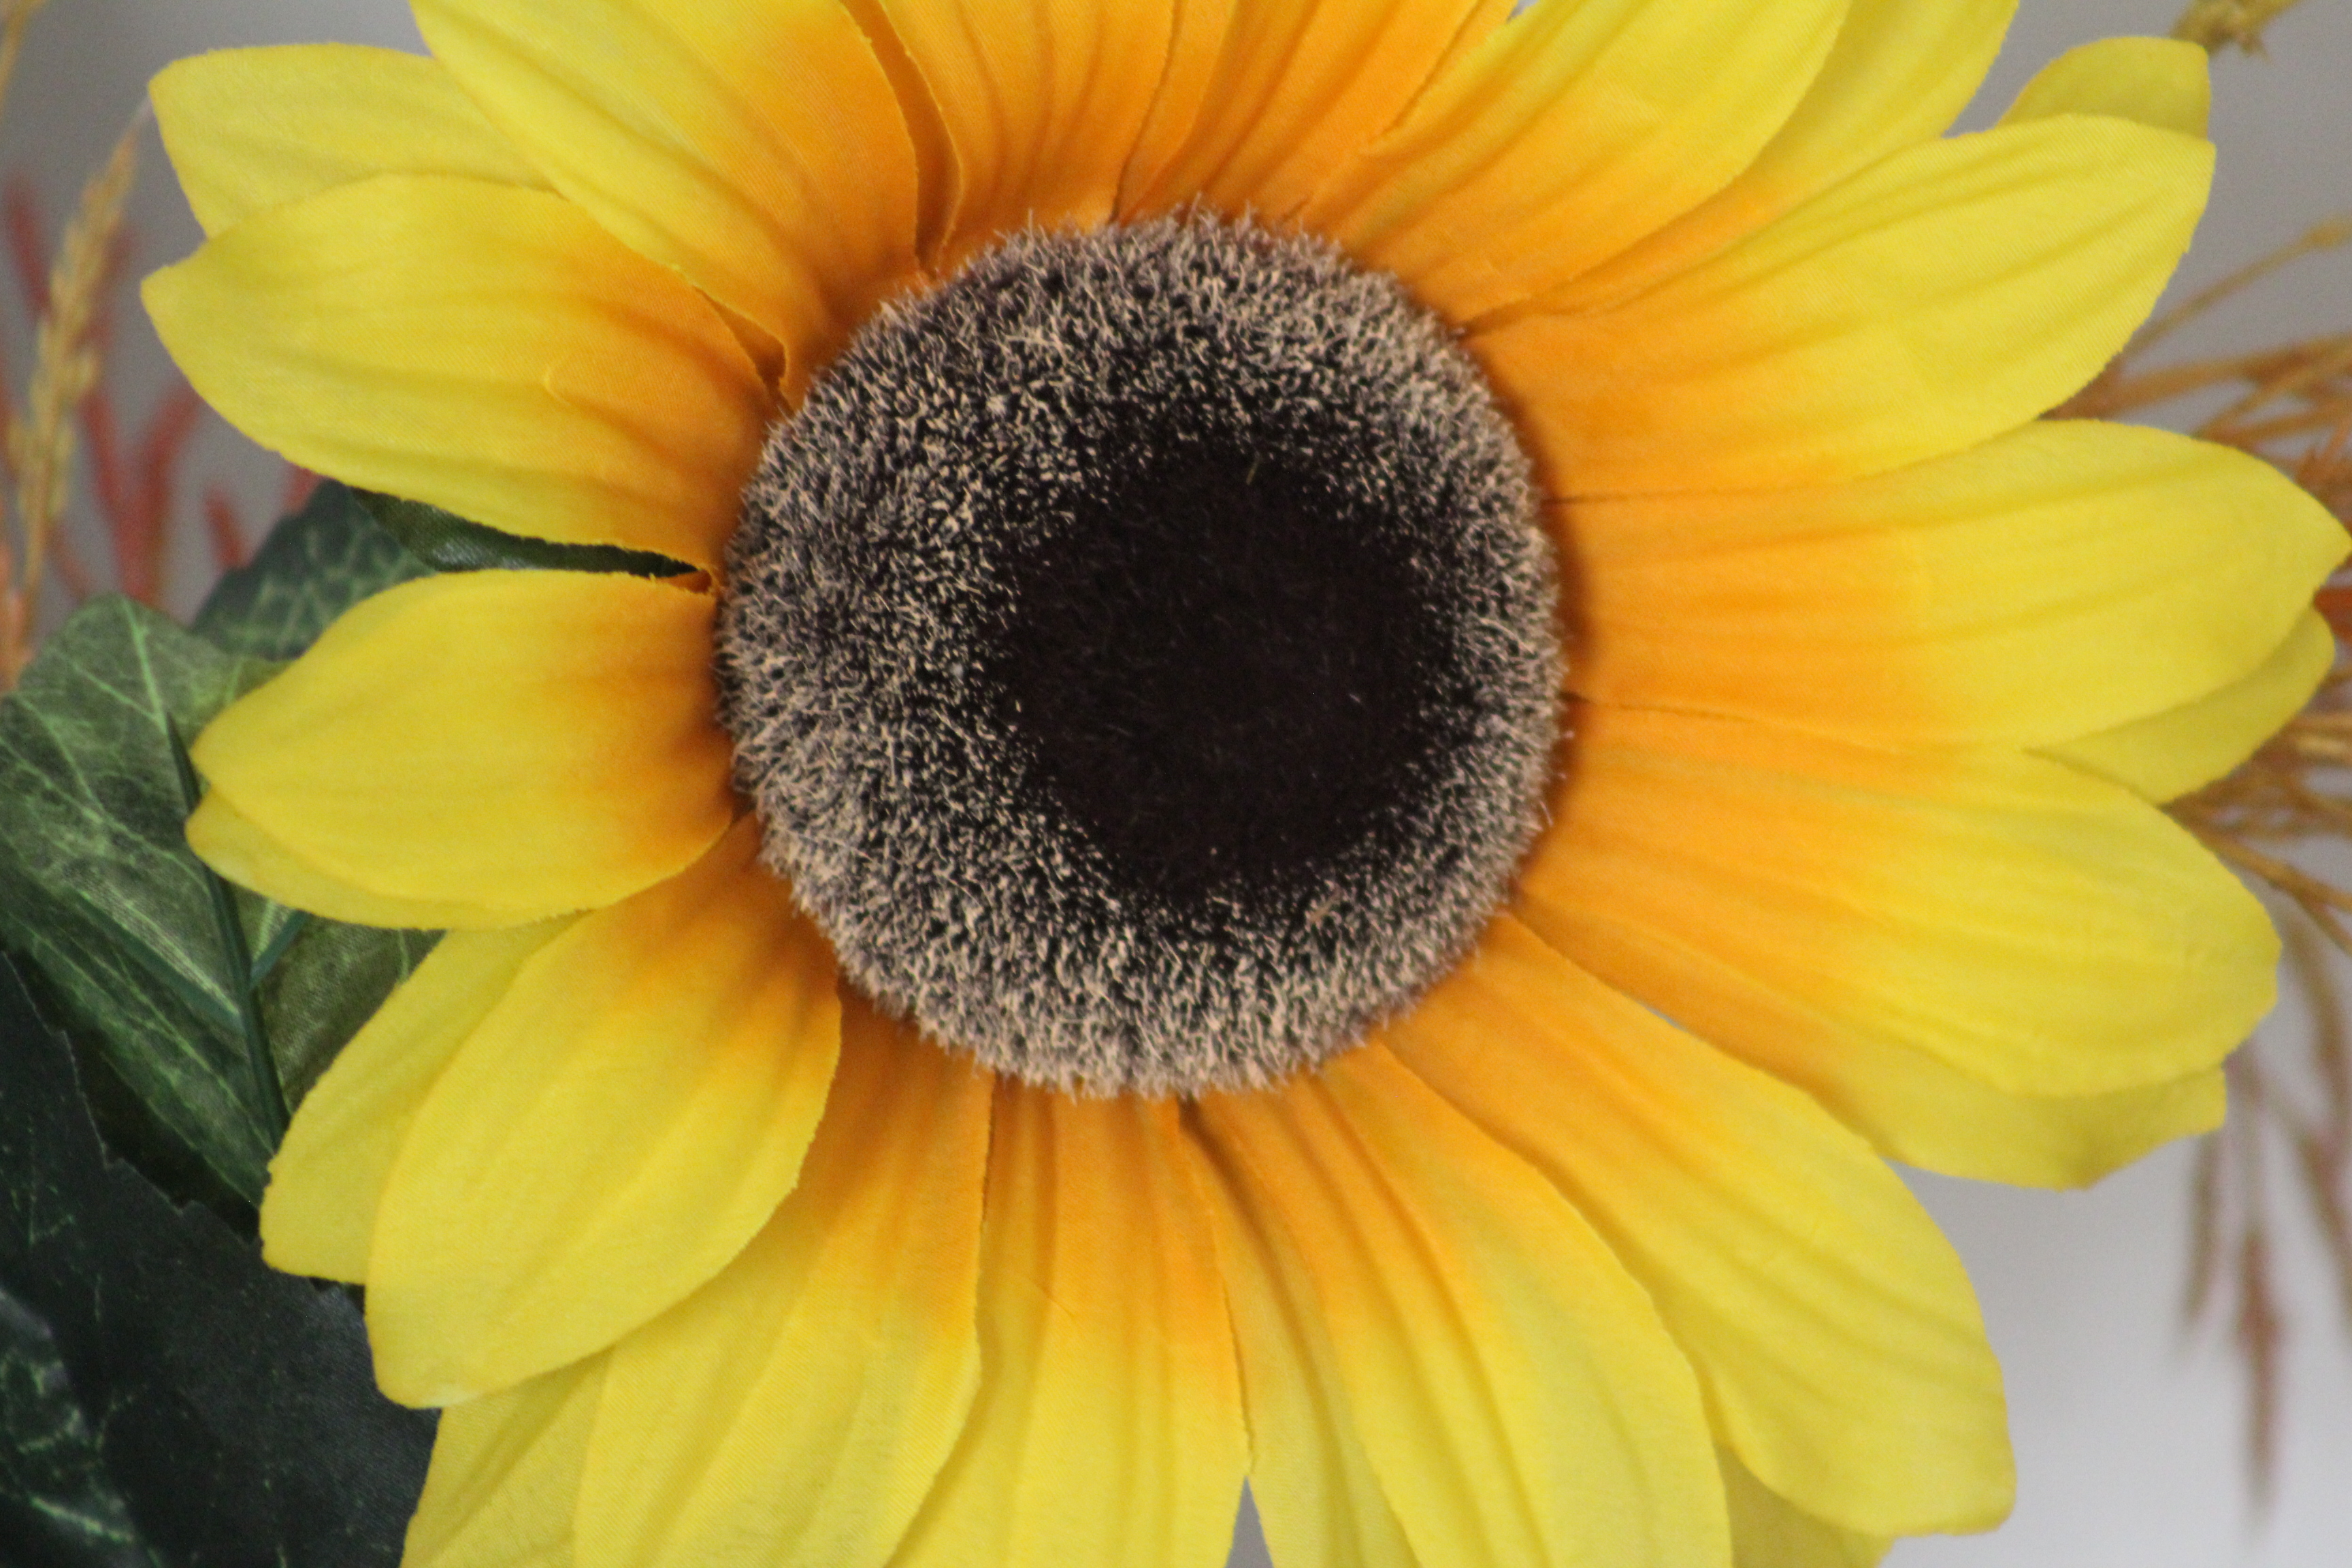 Sunflower Illegality and Other Things That Shouldn't Be Act I